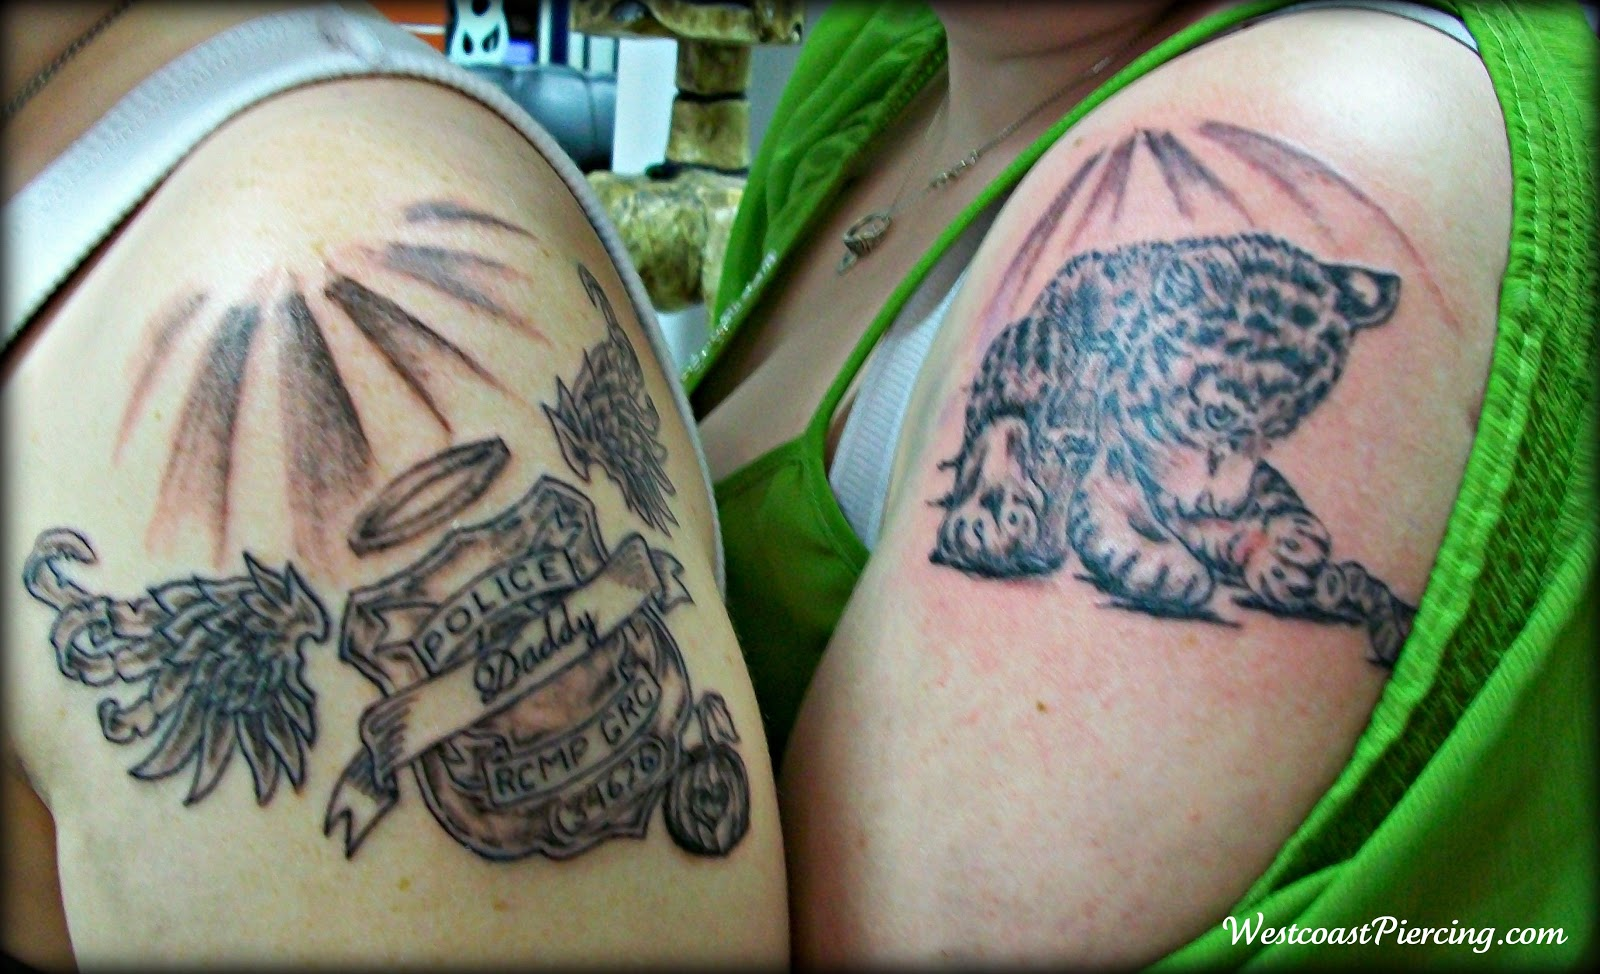 Westcoast piercing and ink sisters receive touching for Sister memorial tattoos